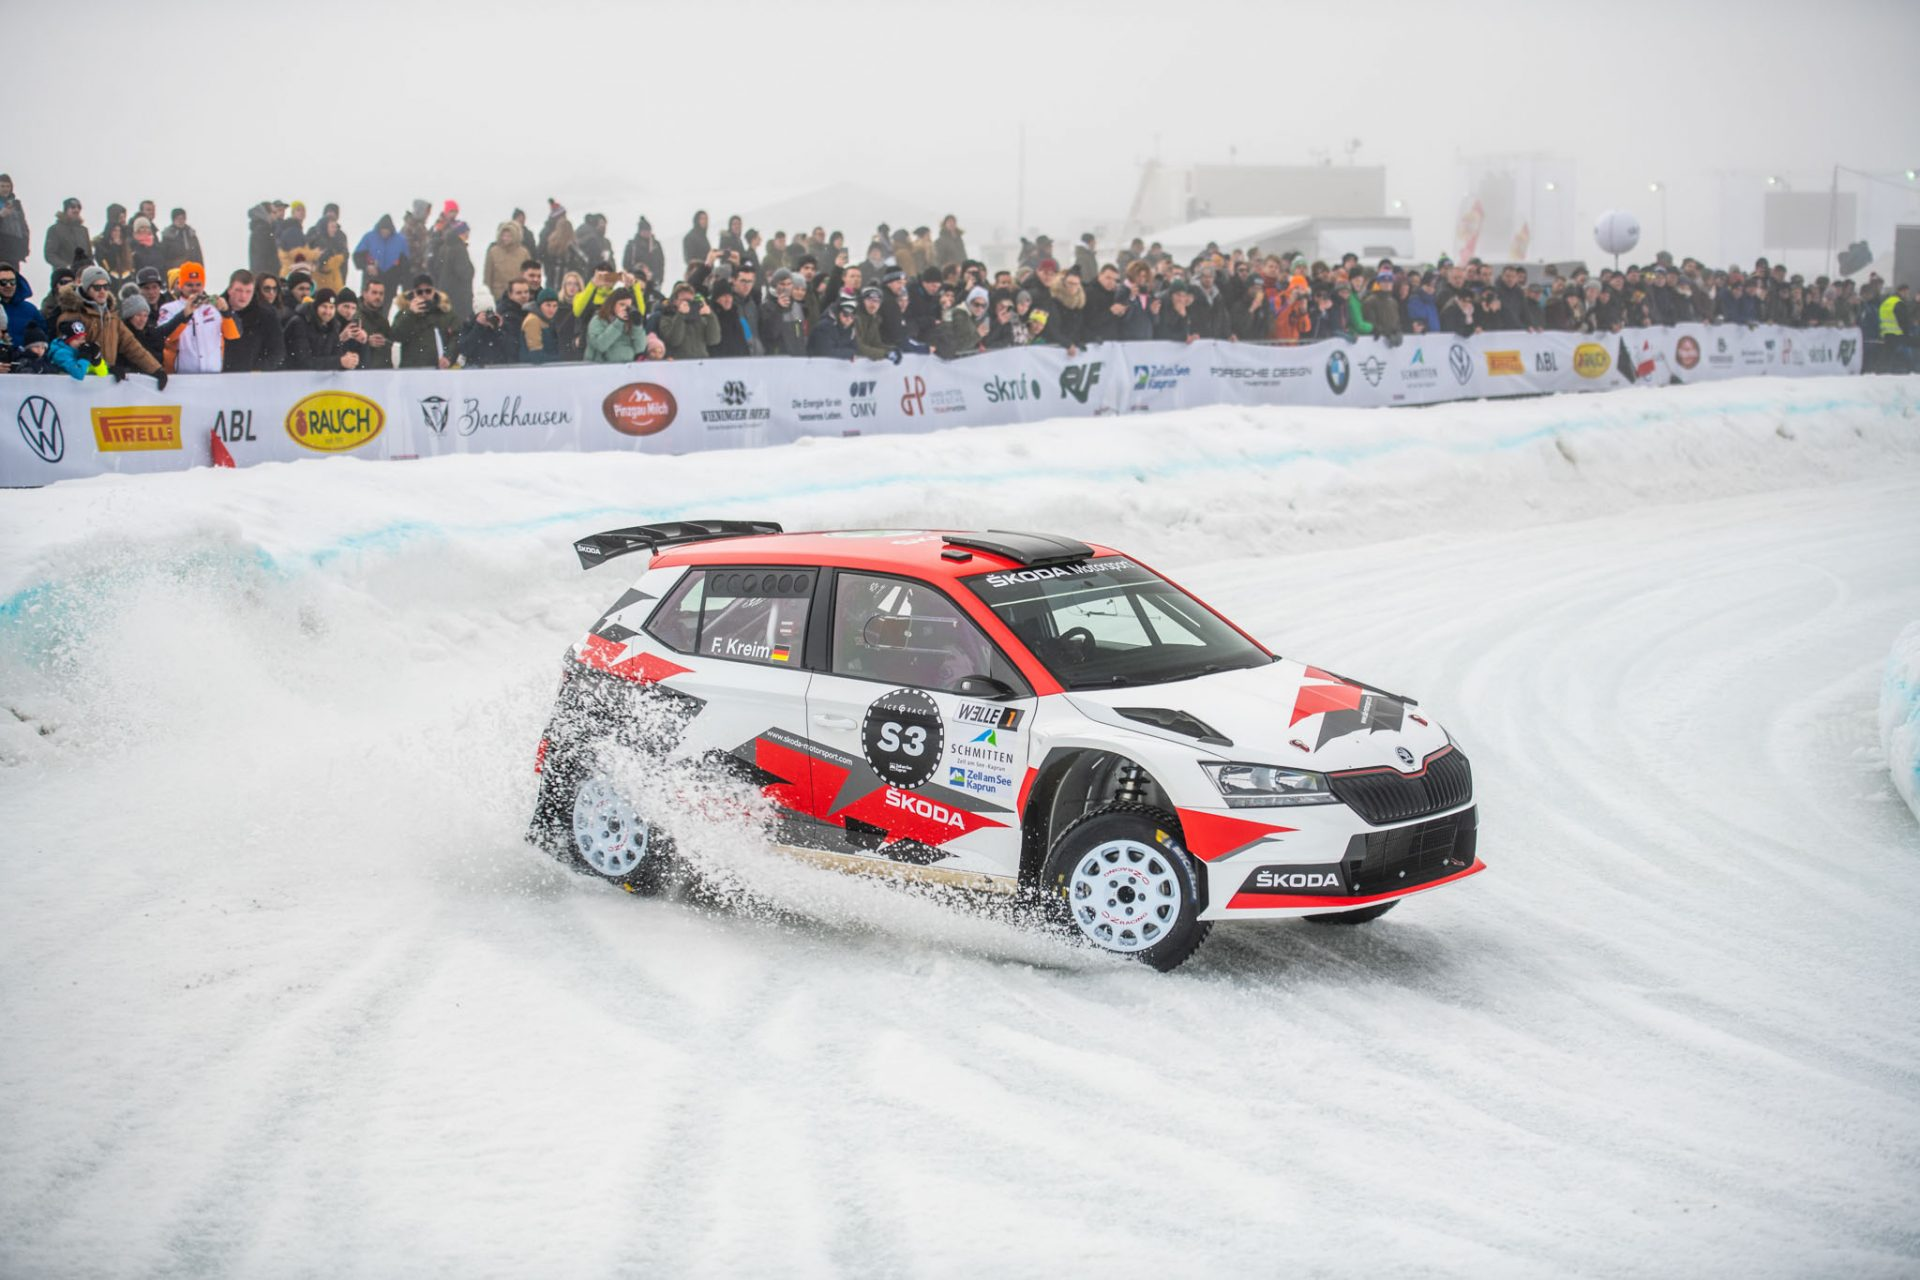 Download winter wallpapers from the Ice Race of Champions